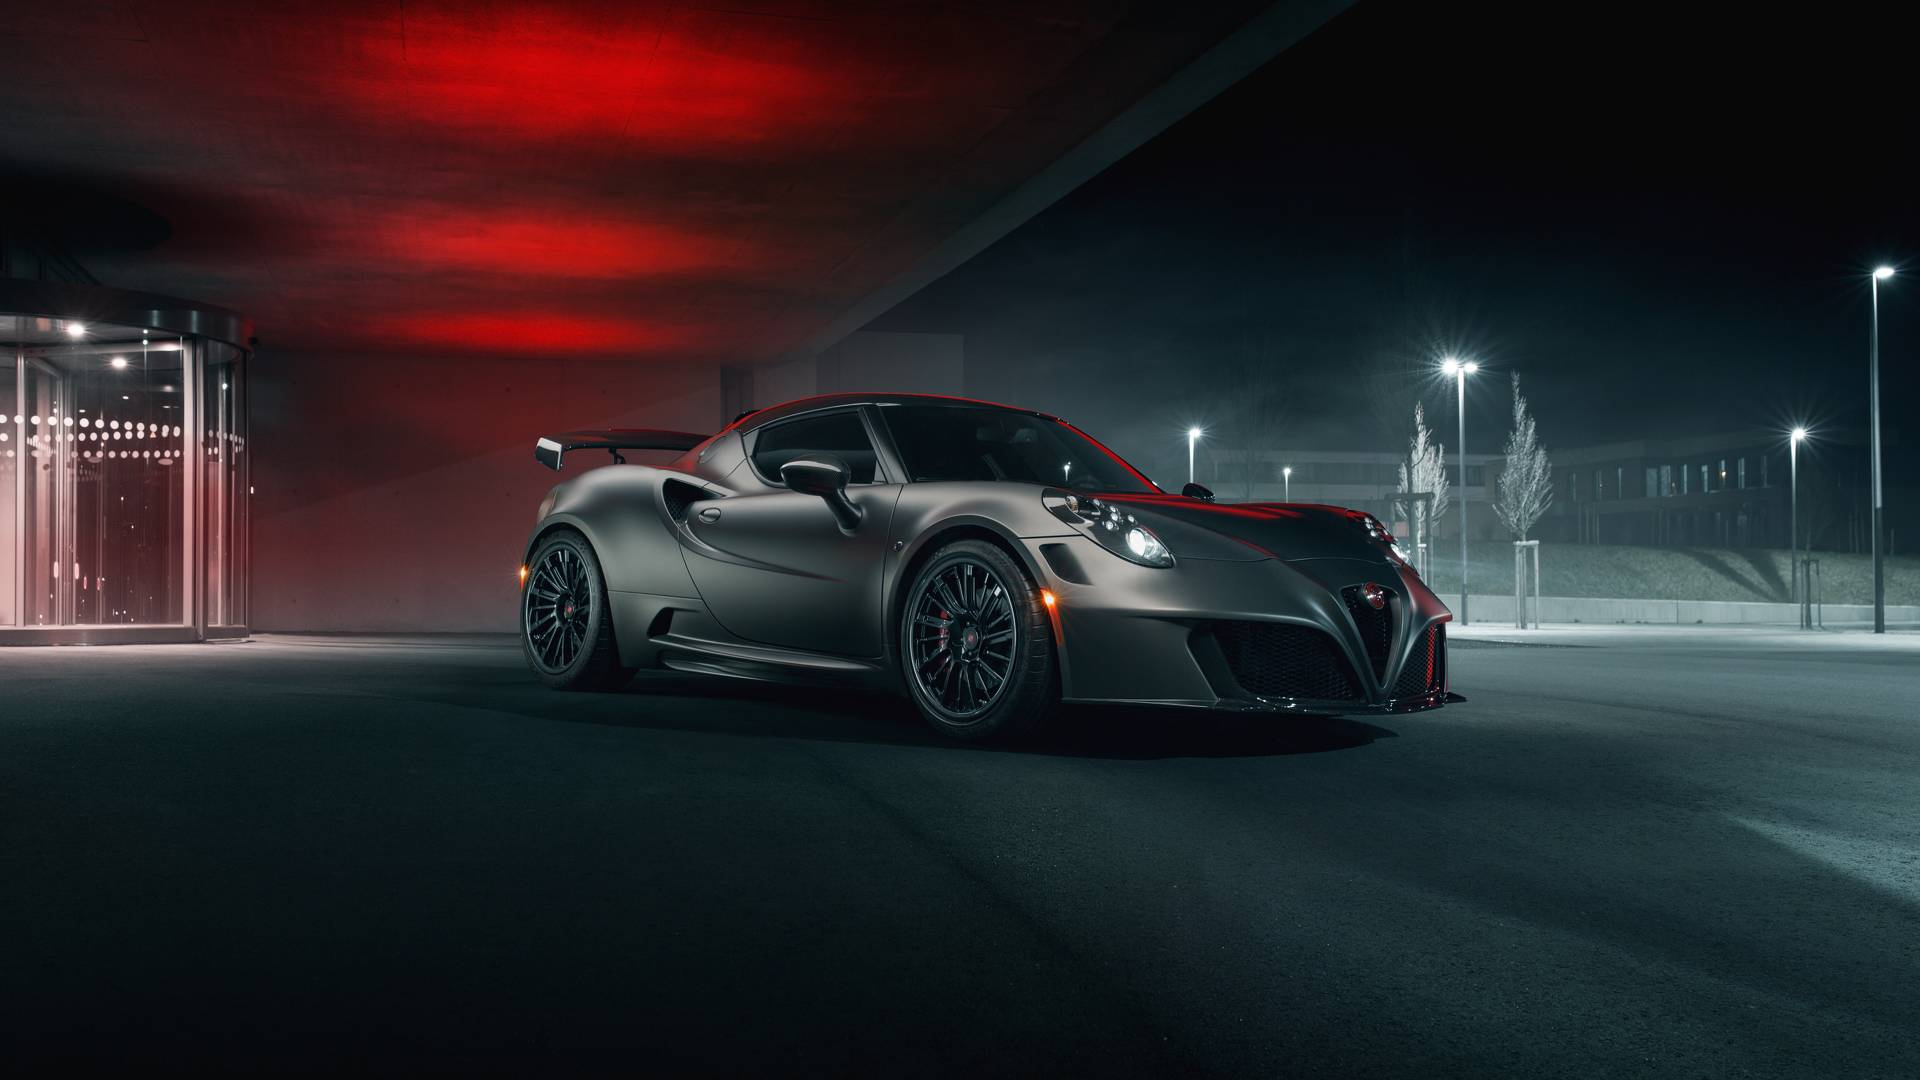 The German tuner workshop Pogea Racing has issued a Nemesis upgrade package for the luxurious two-door coupe Alfa Romeo 4C